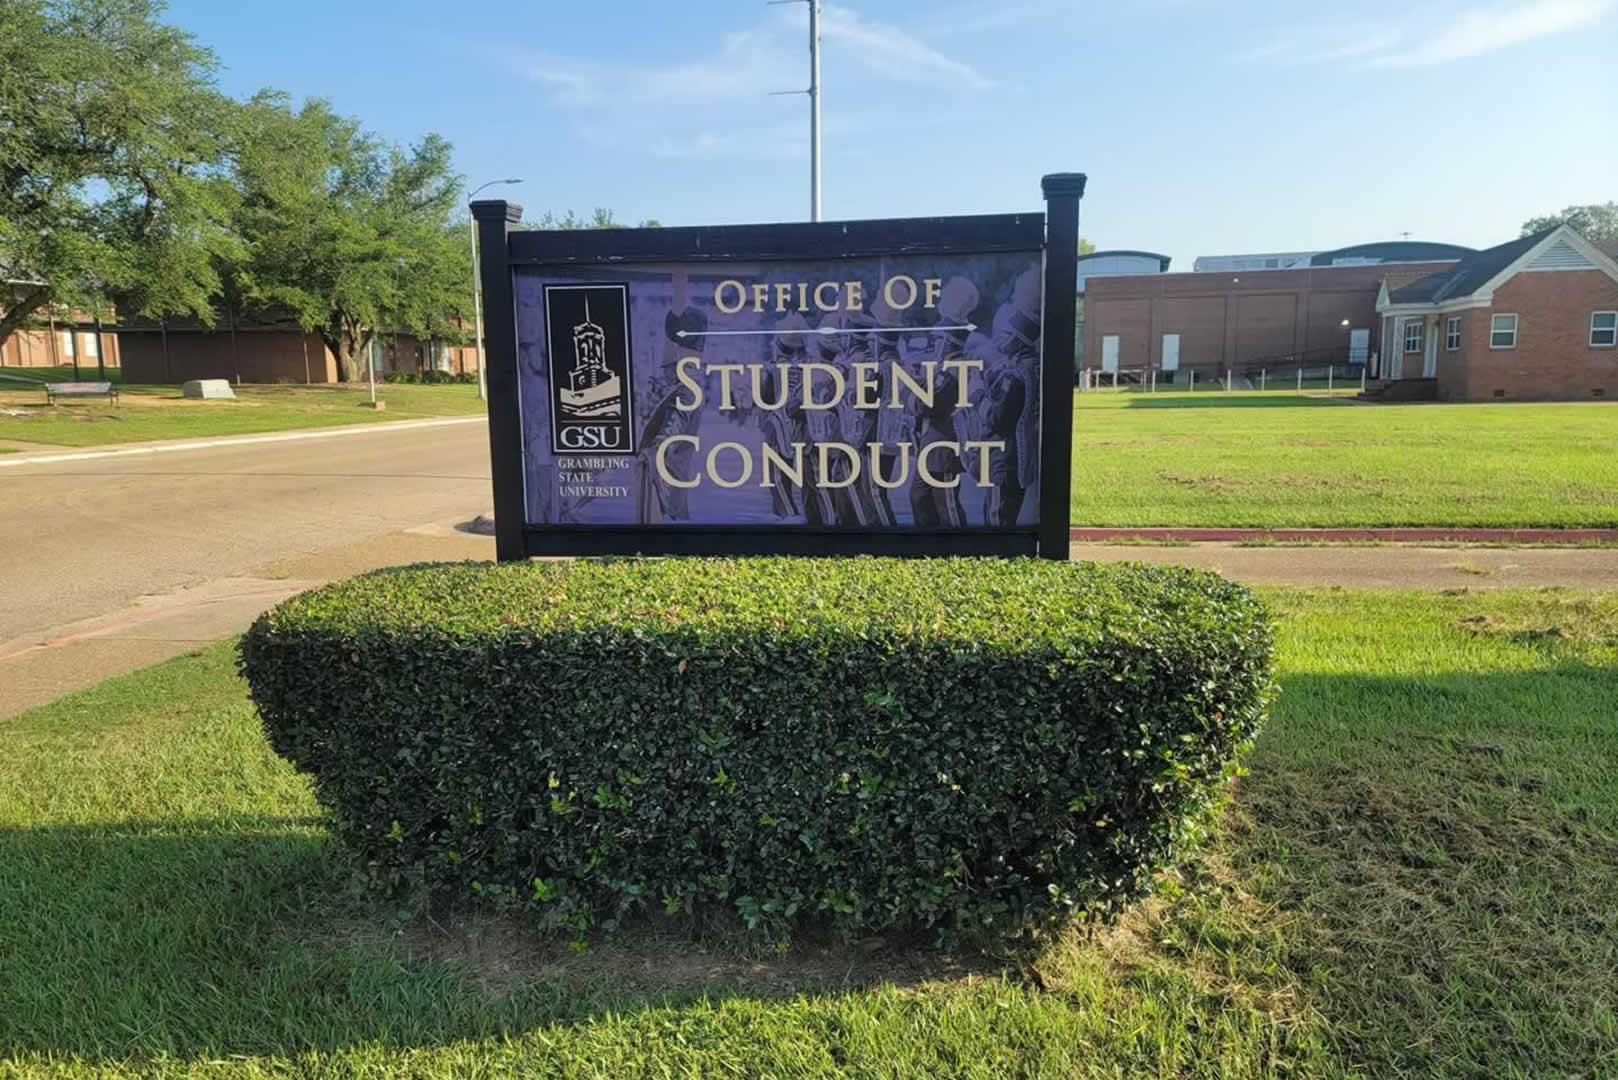 Office of Student Conduct - Campus Sign